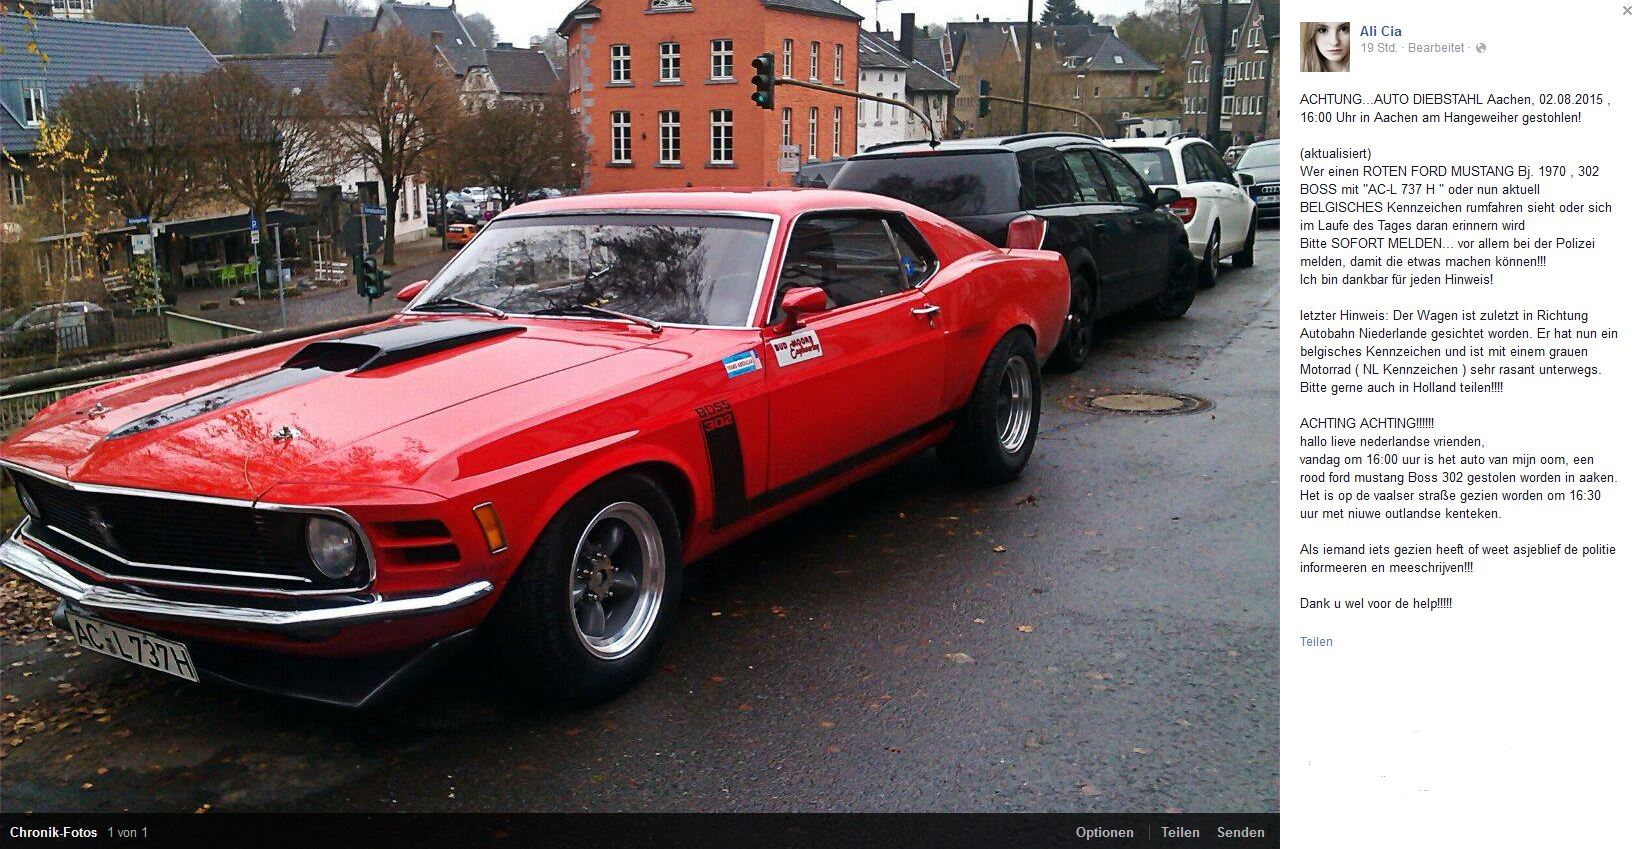 stolen 1970 mustang 302 boss in aachen germany possibly in holland by now. Black Bedroom Furniture Sets. Home Design Ideas